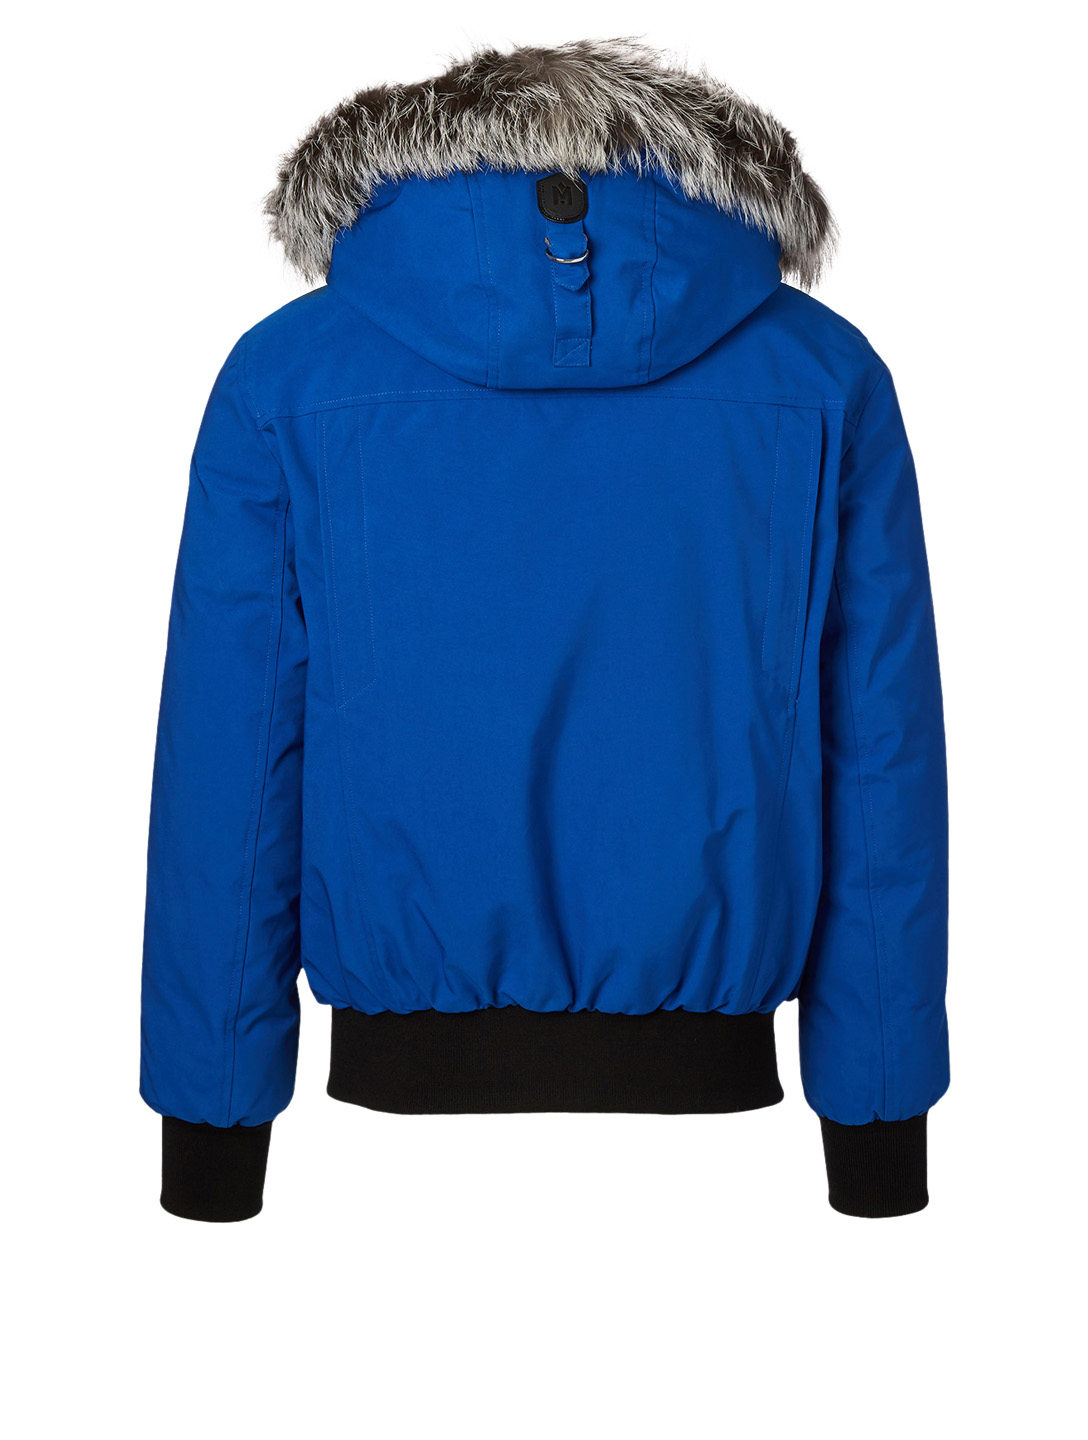 MACKAGE Dixon Down Bomber Jacket With Silverfox Fur Hood Men's Blue